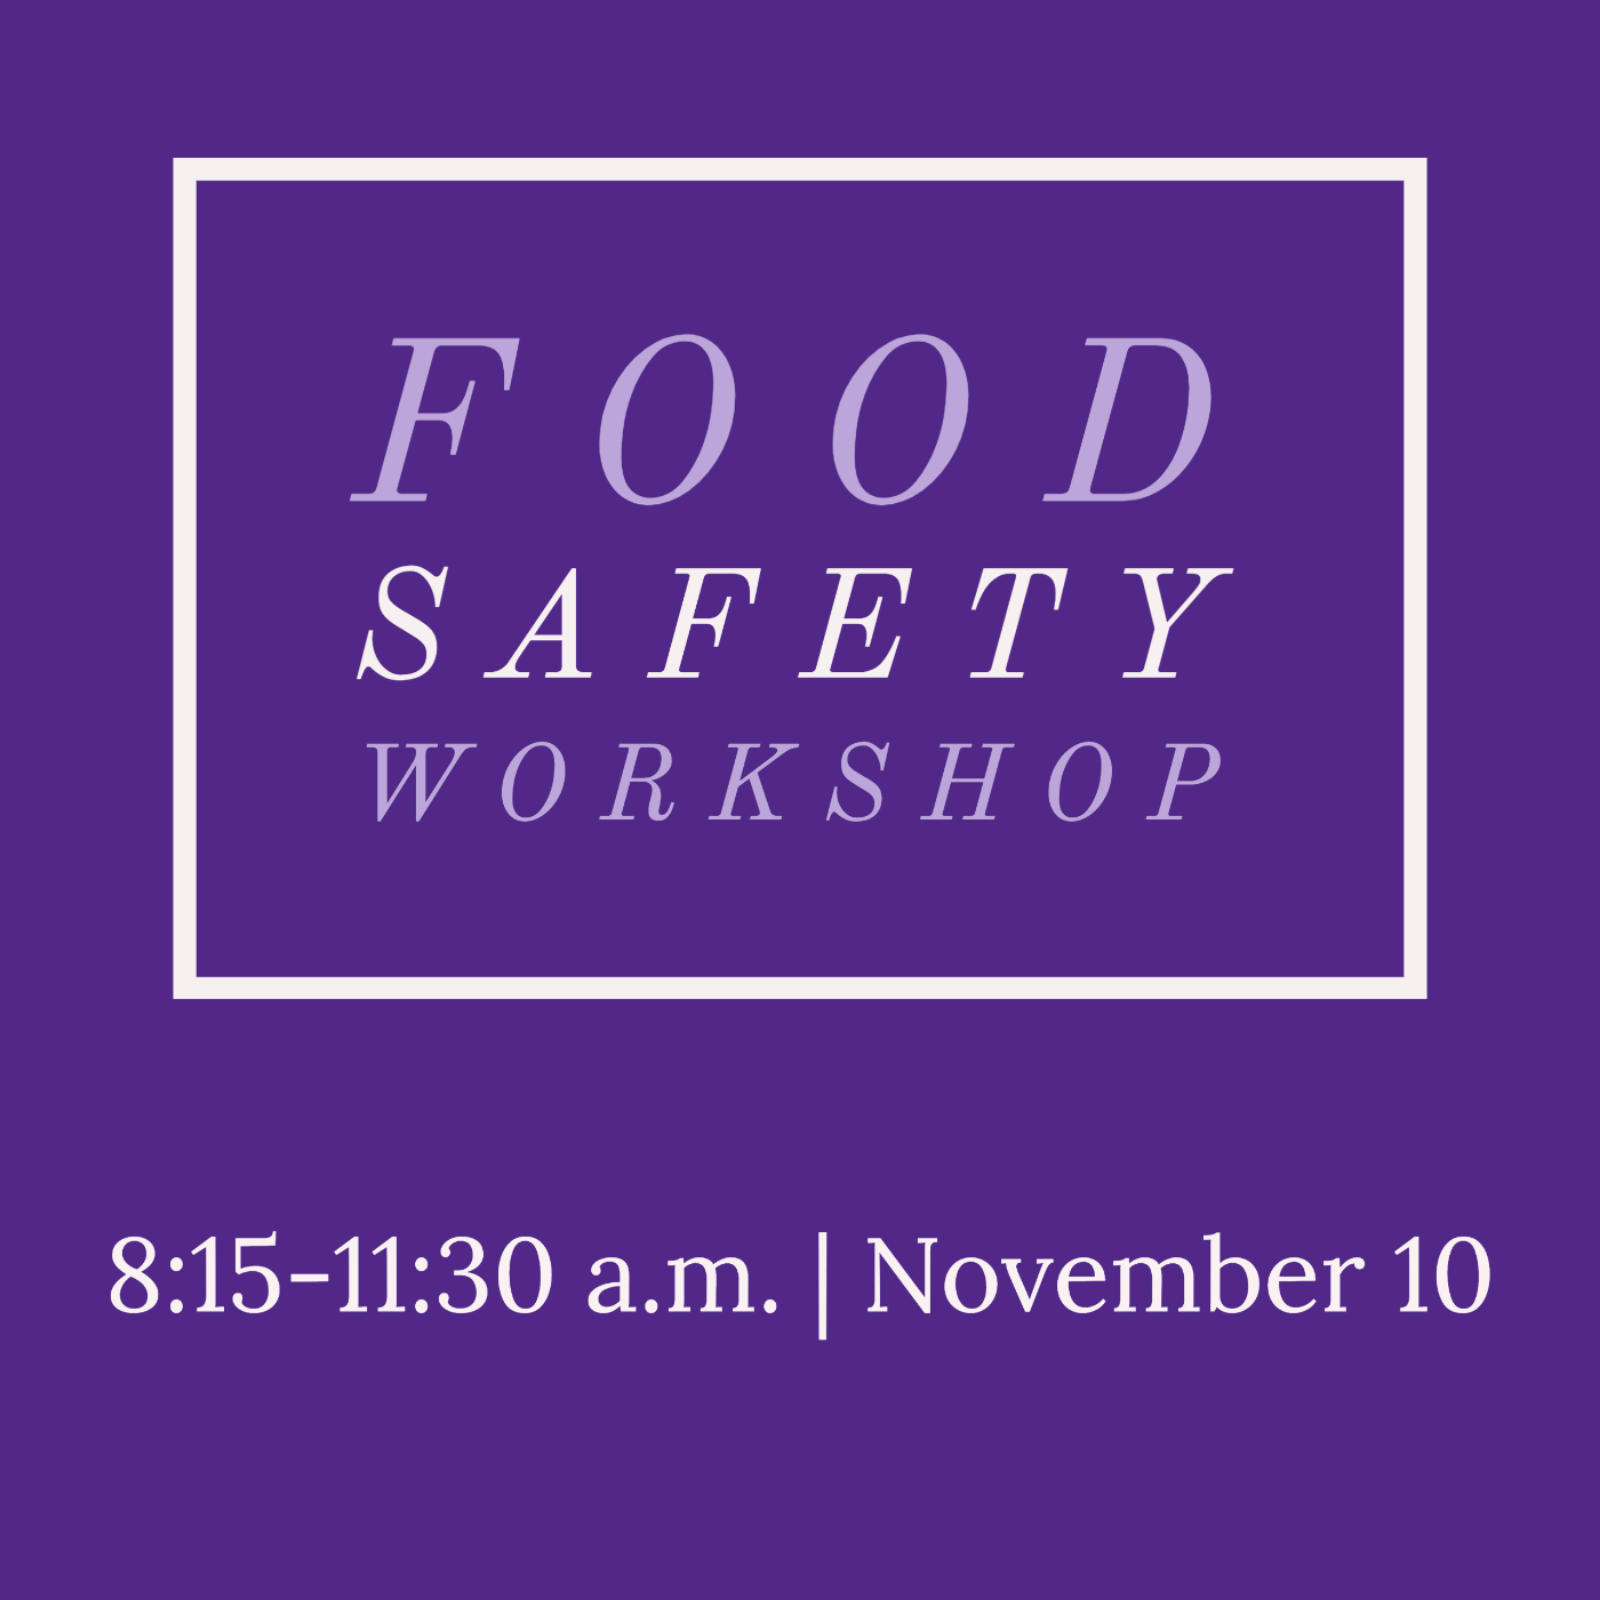 Food safety workshop